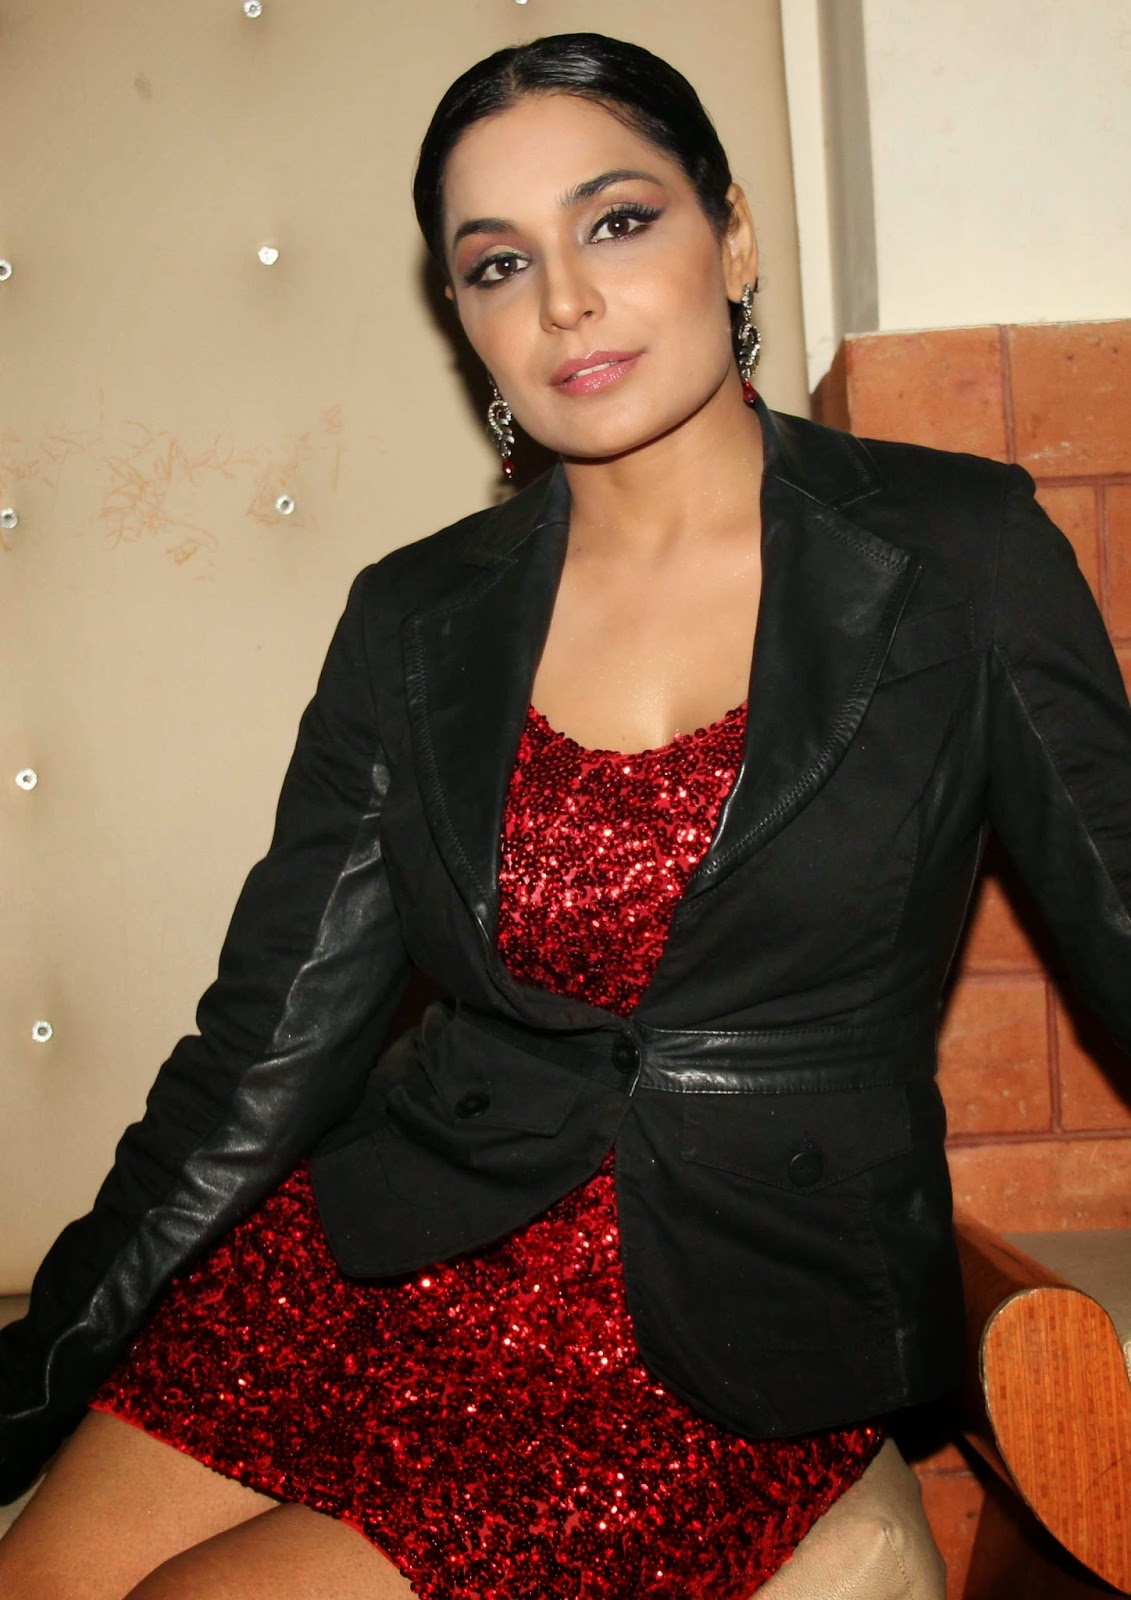 High Quality Bollywood Celebrity Pictures Pakistani -5714